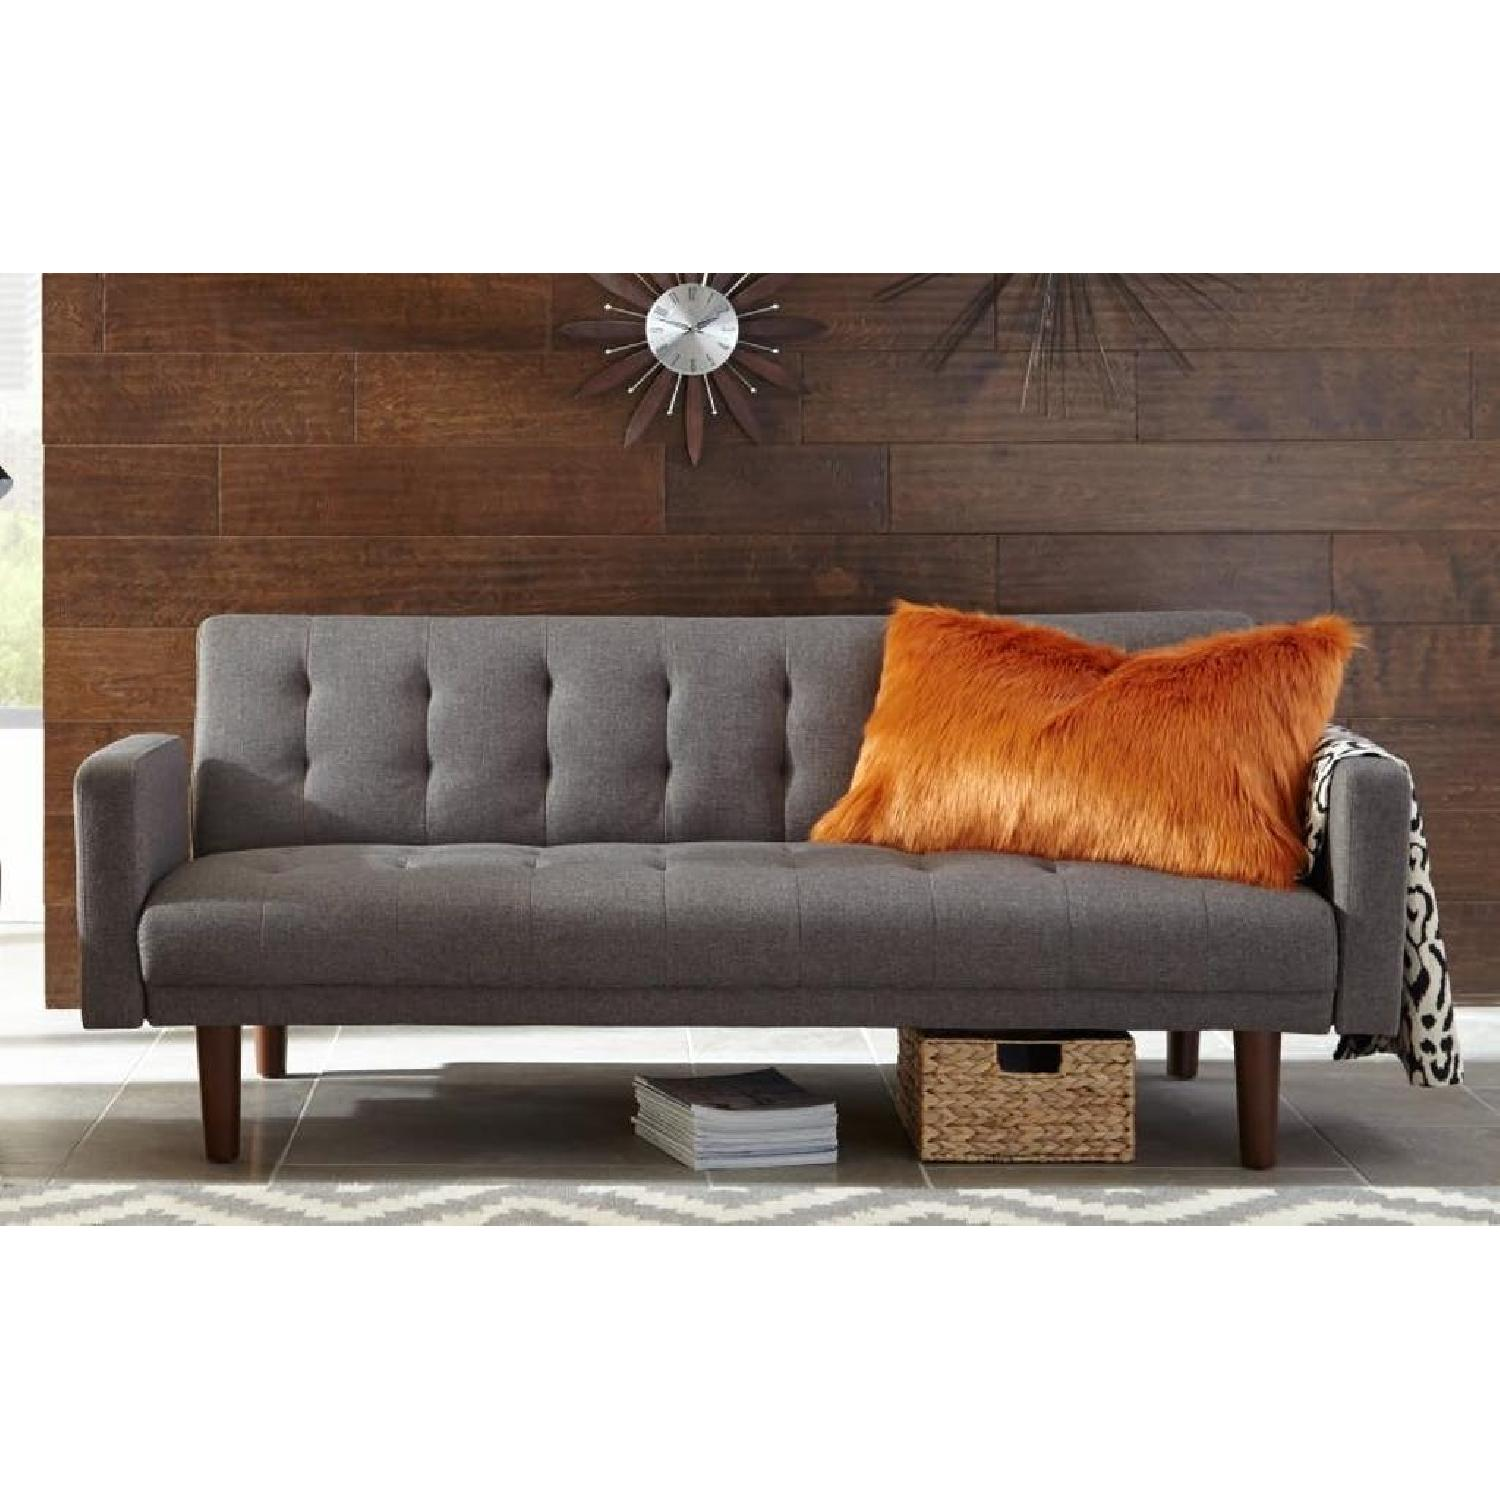 Tufted Grey Sleeper Sofa-0